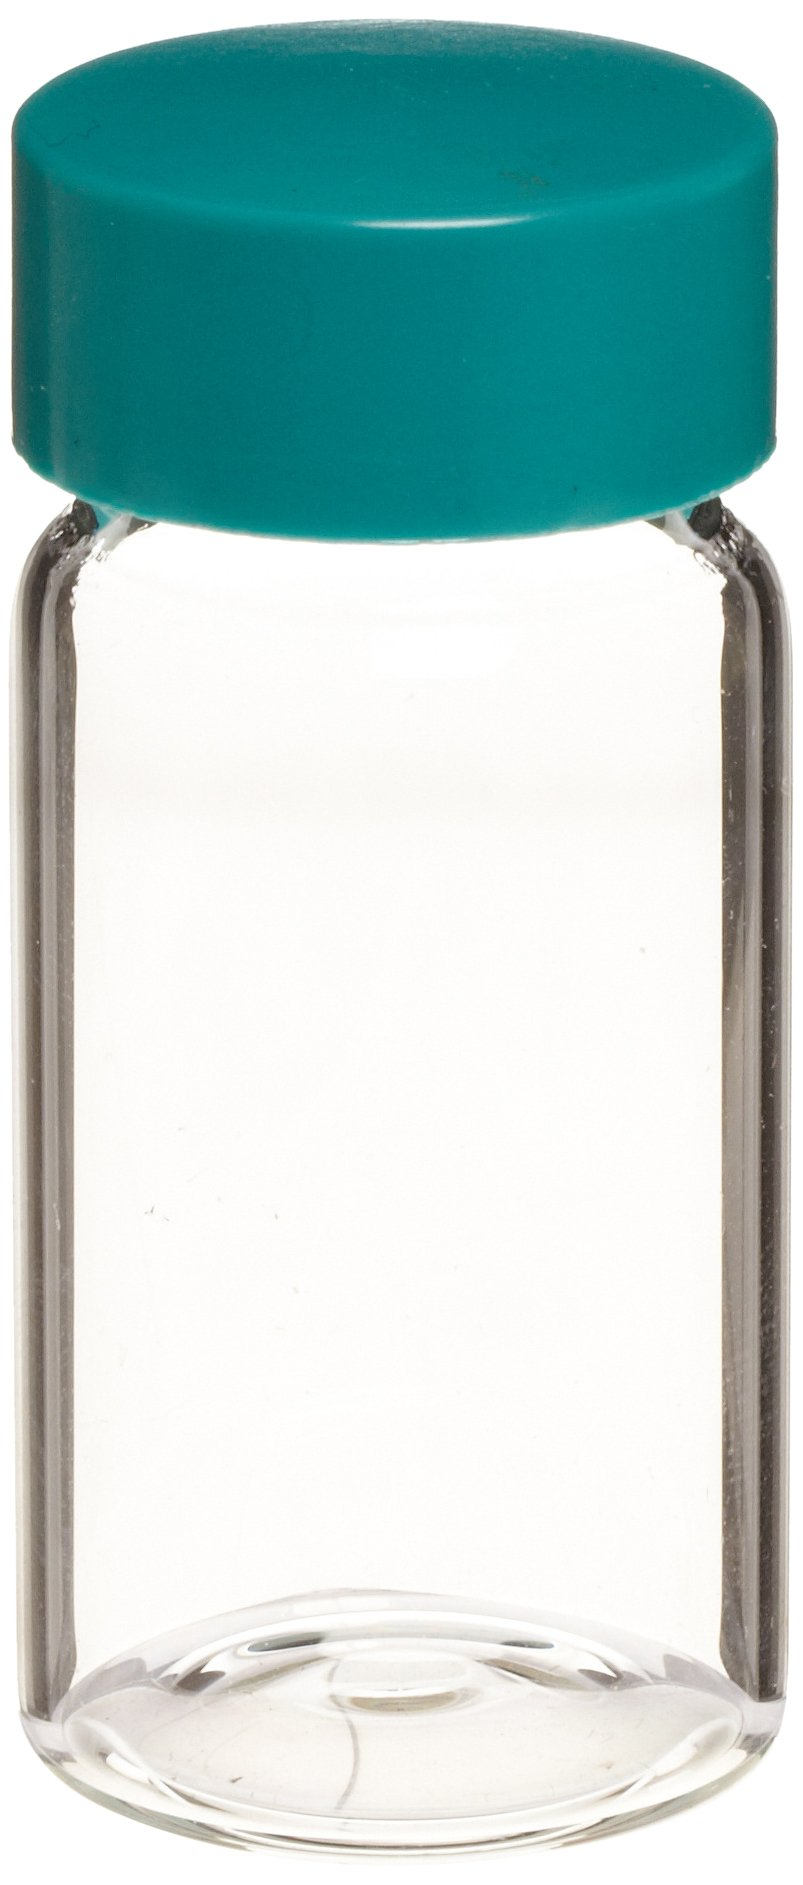 Chemglass CG-4900-05 Borosilicate Glass 30mL Clear Scintillation Vial, with Solid PTFE Lined Cap (Pack of 144)